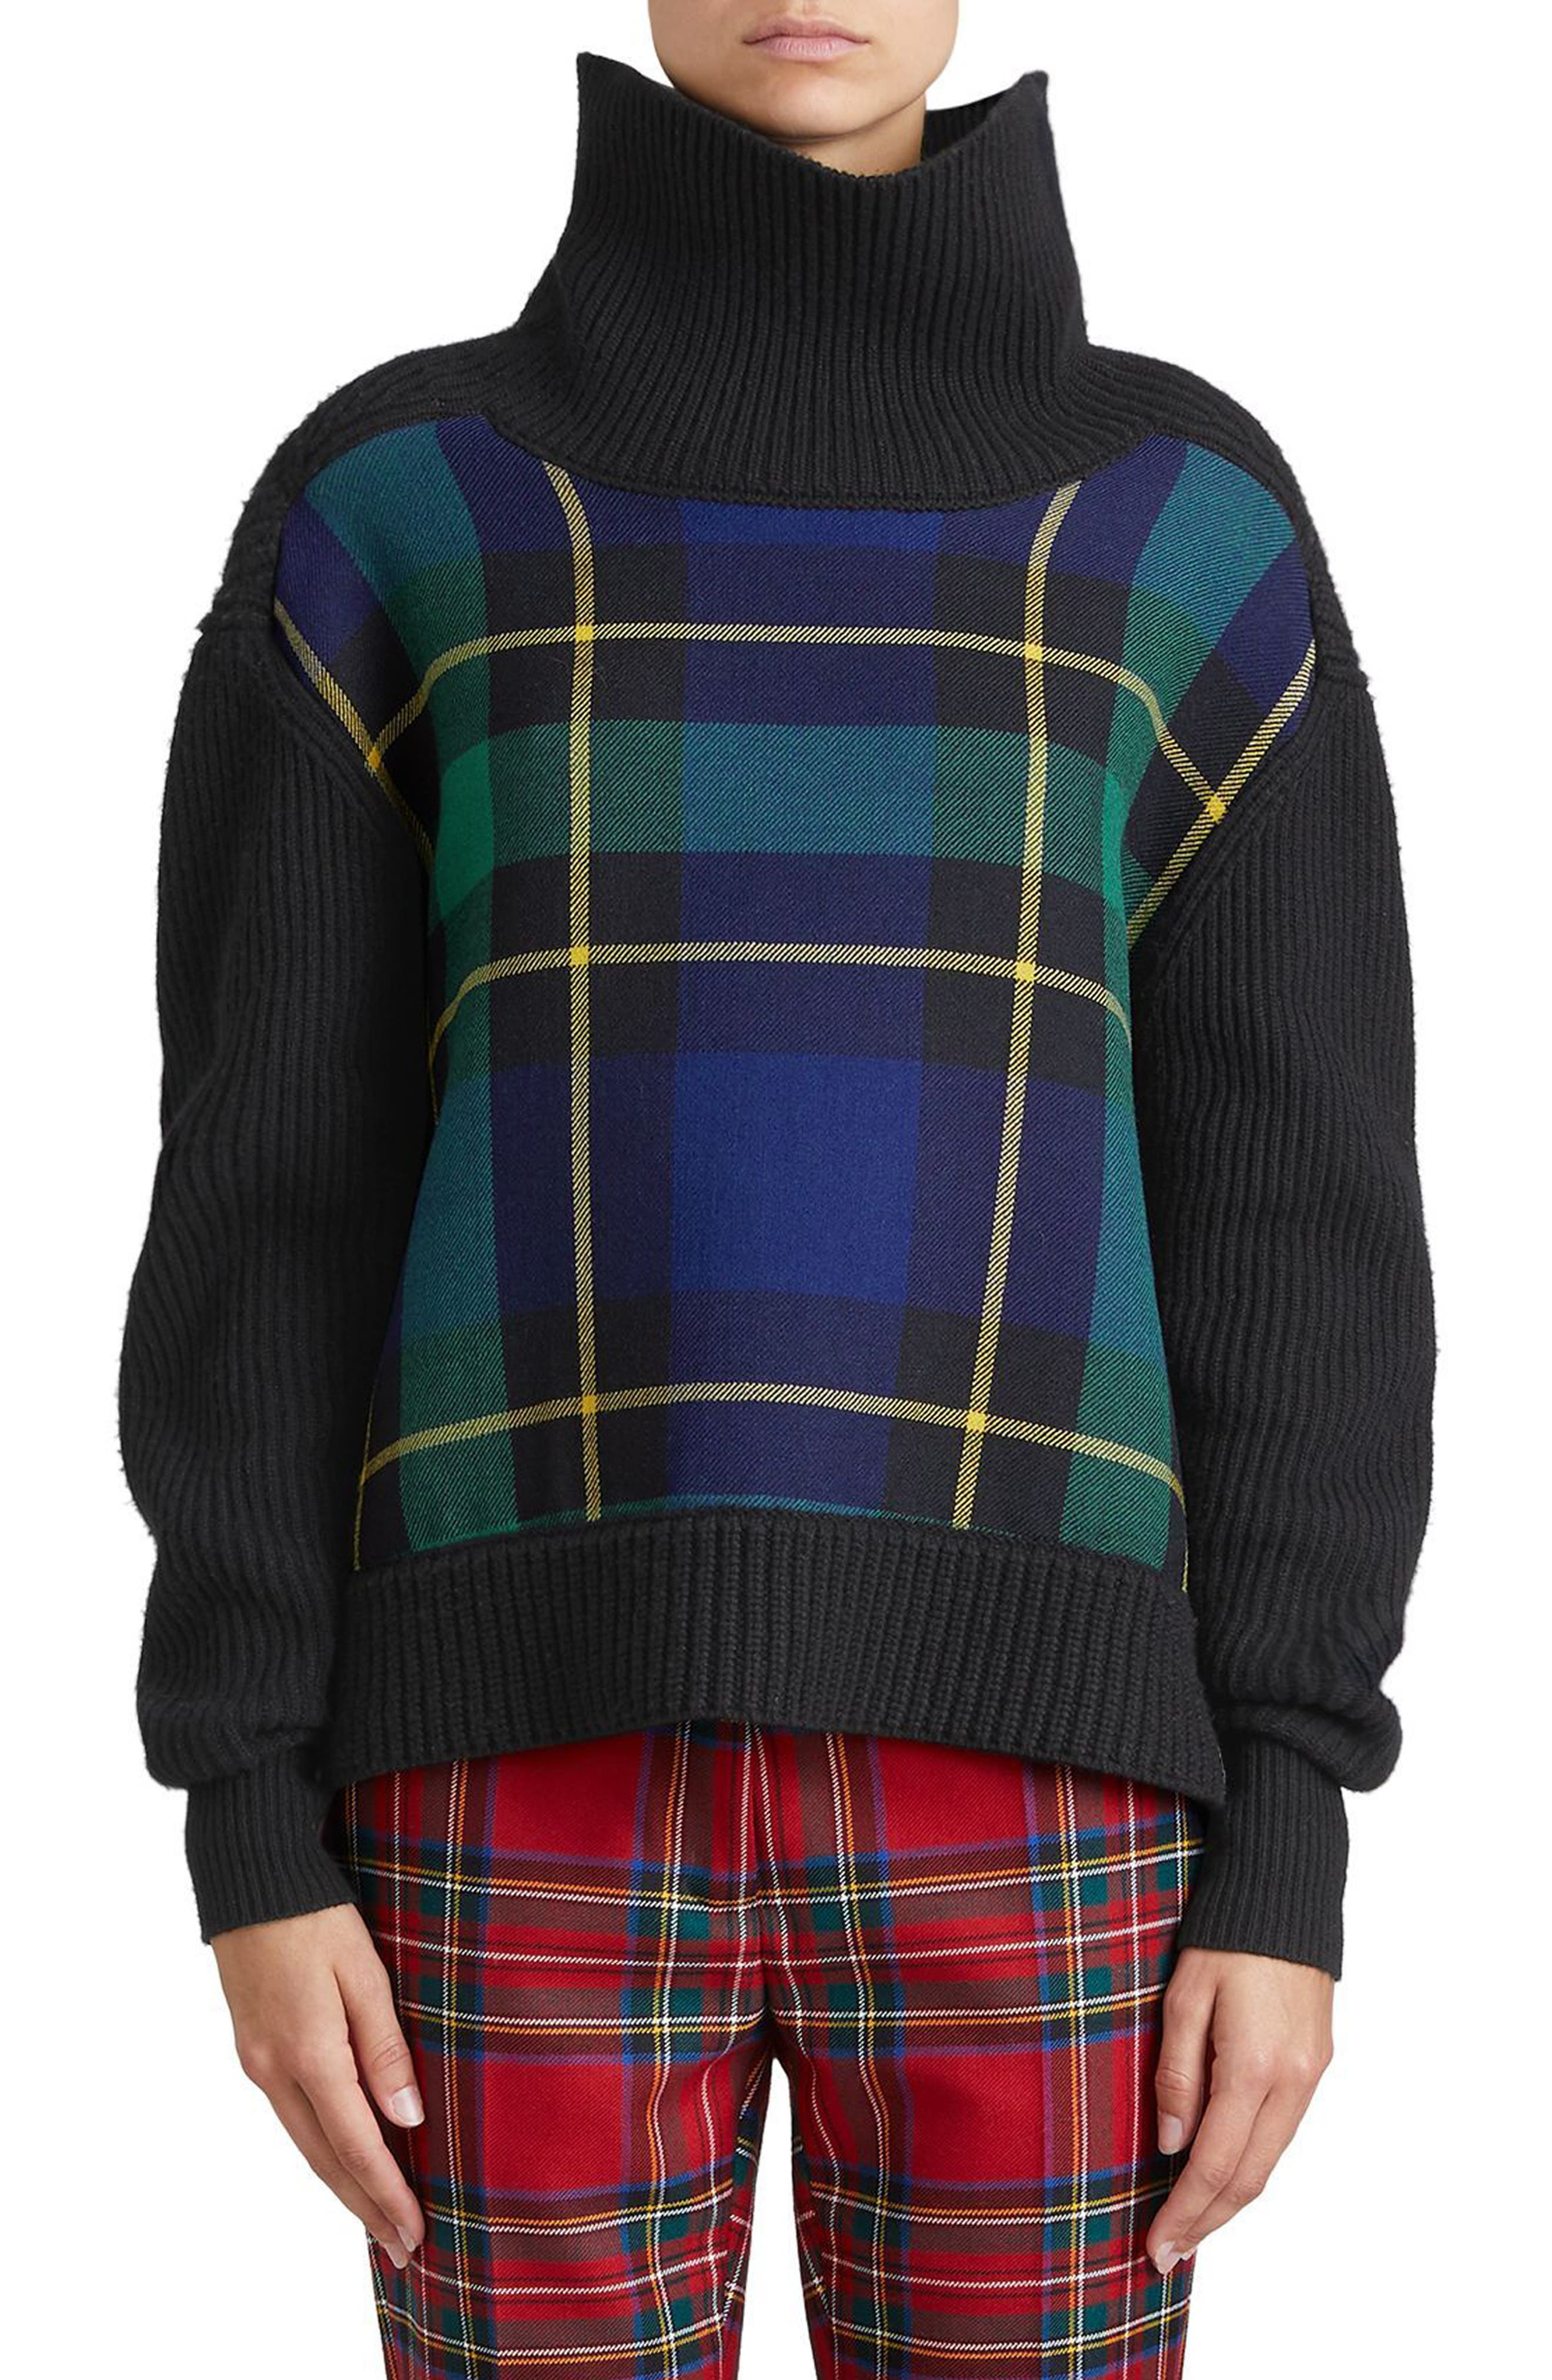 Fiora Check Wool & Cashmere Turtleneck Sweater,                         Main,                         color, Black